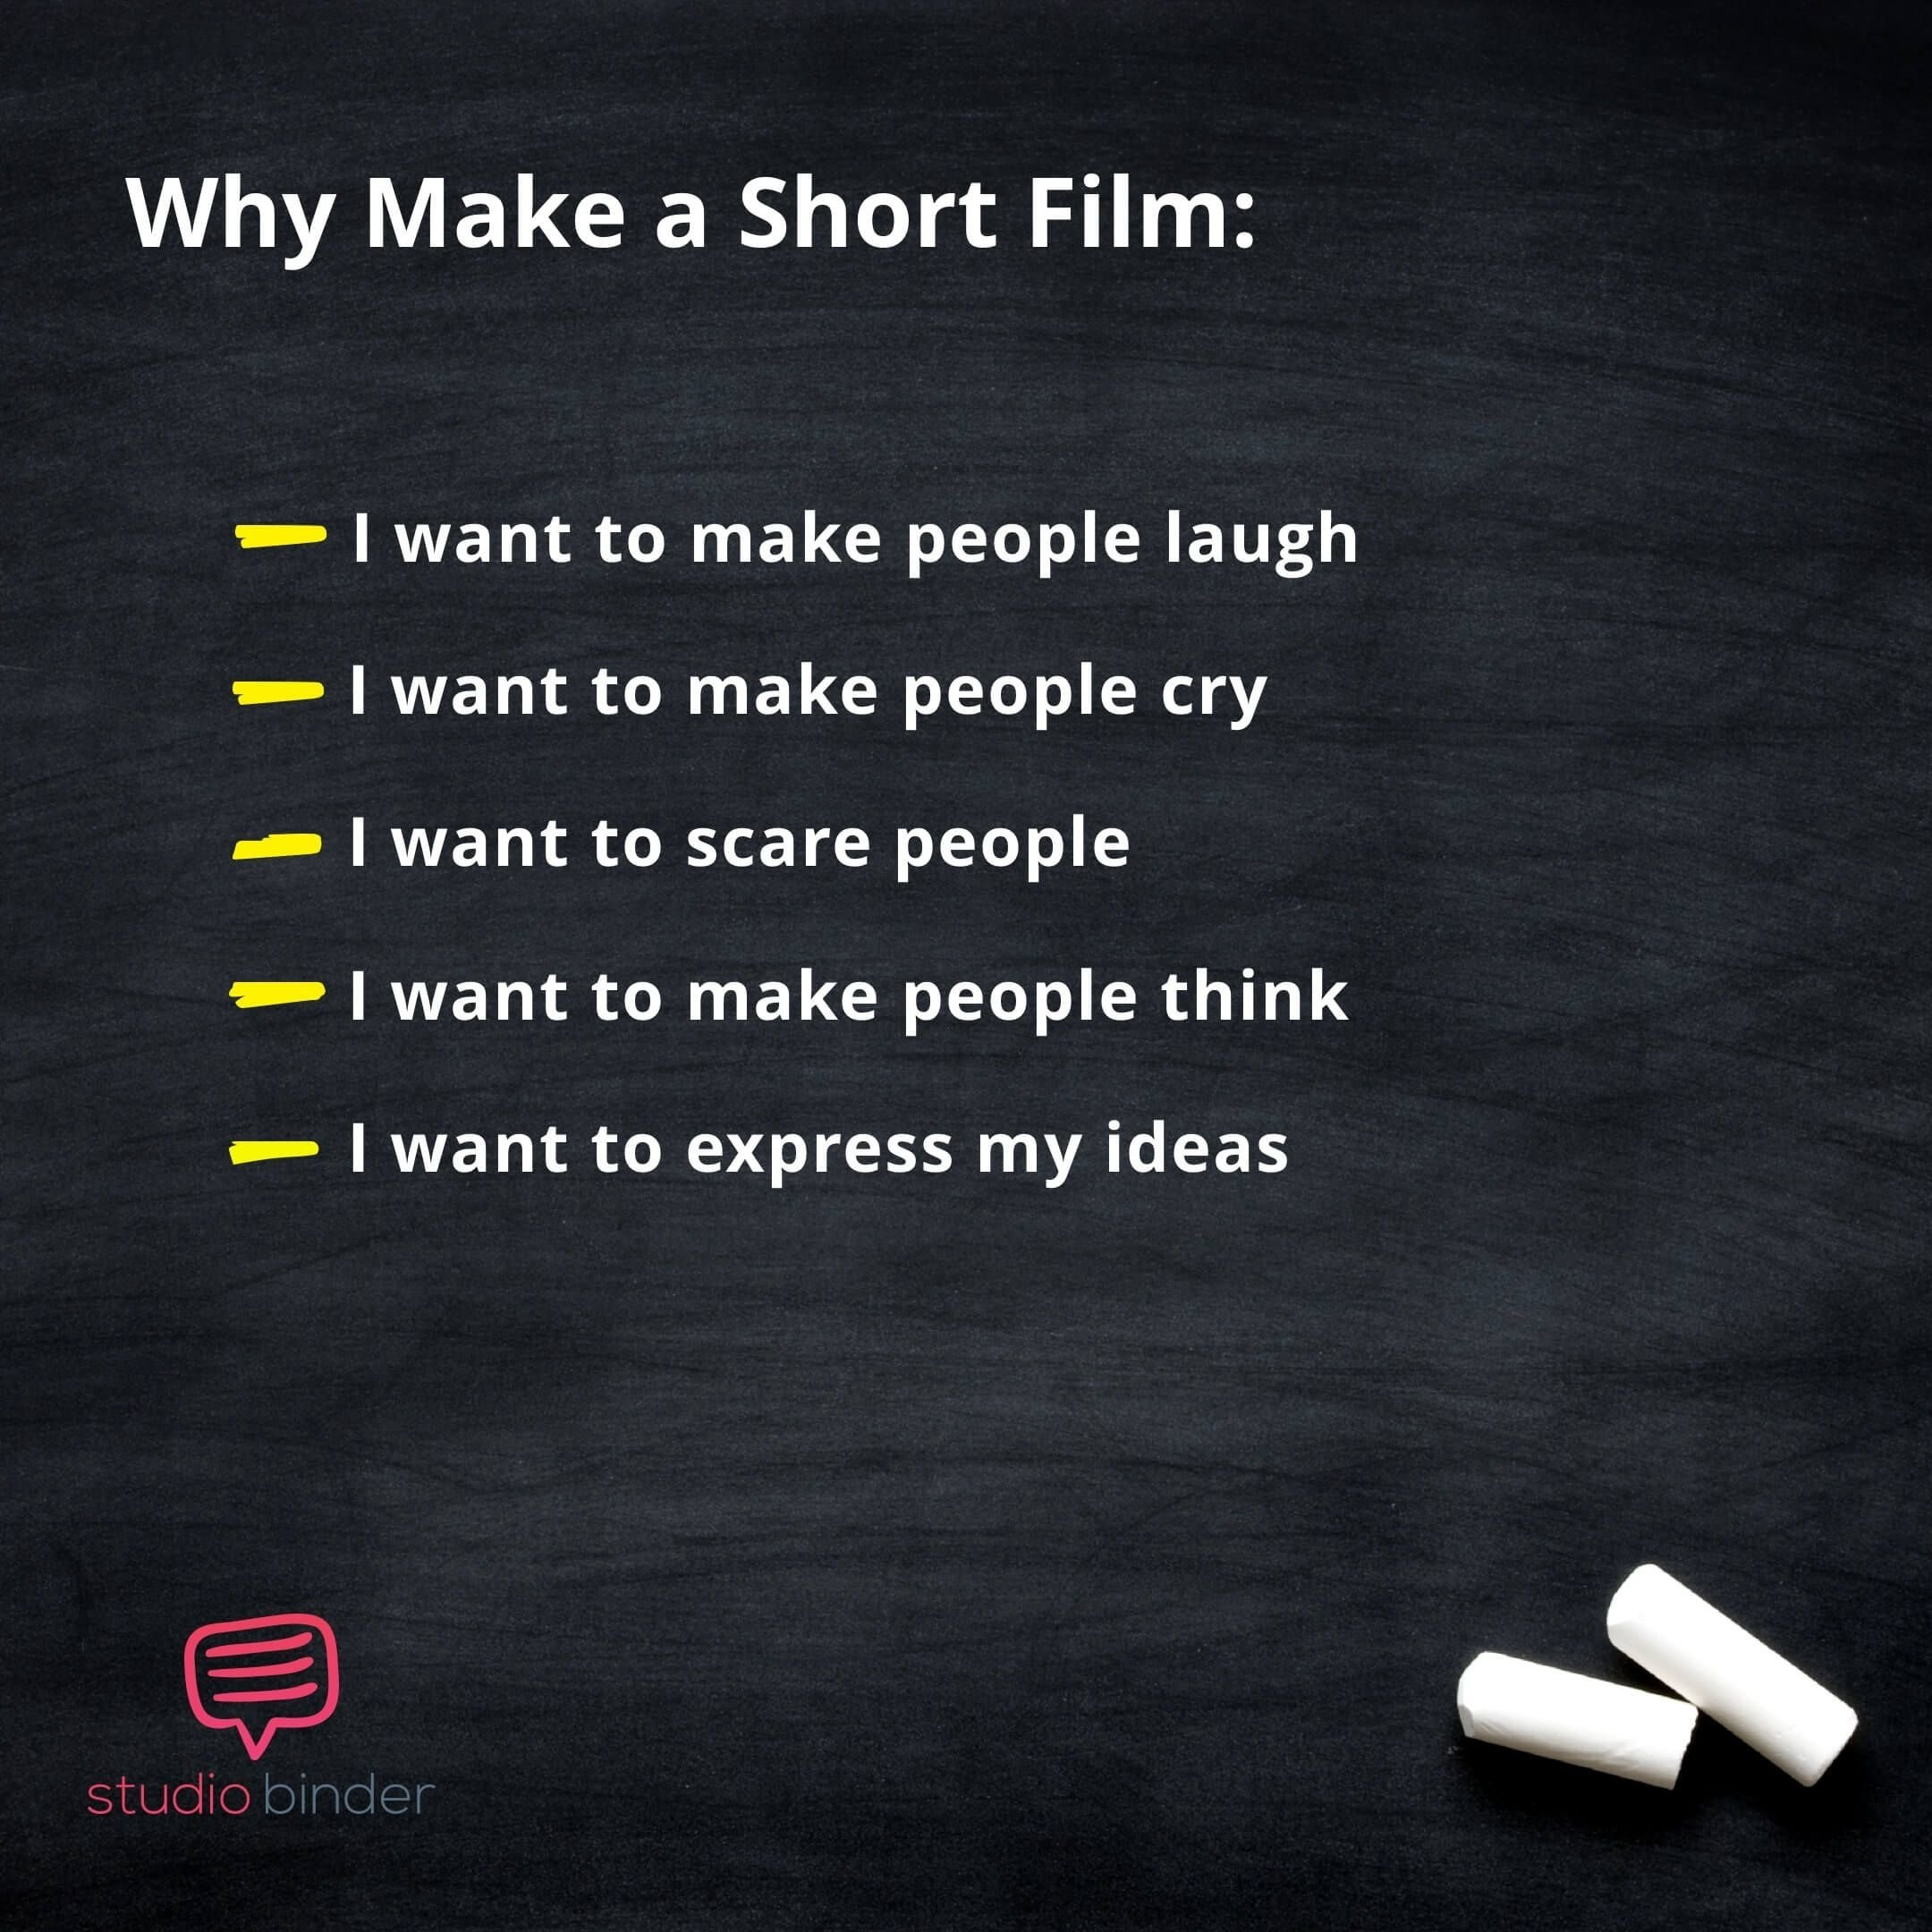 10 Elegant Ideas For A Short Film how to find short film ideas that will level up your career short 2020